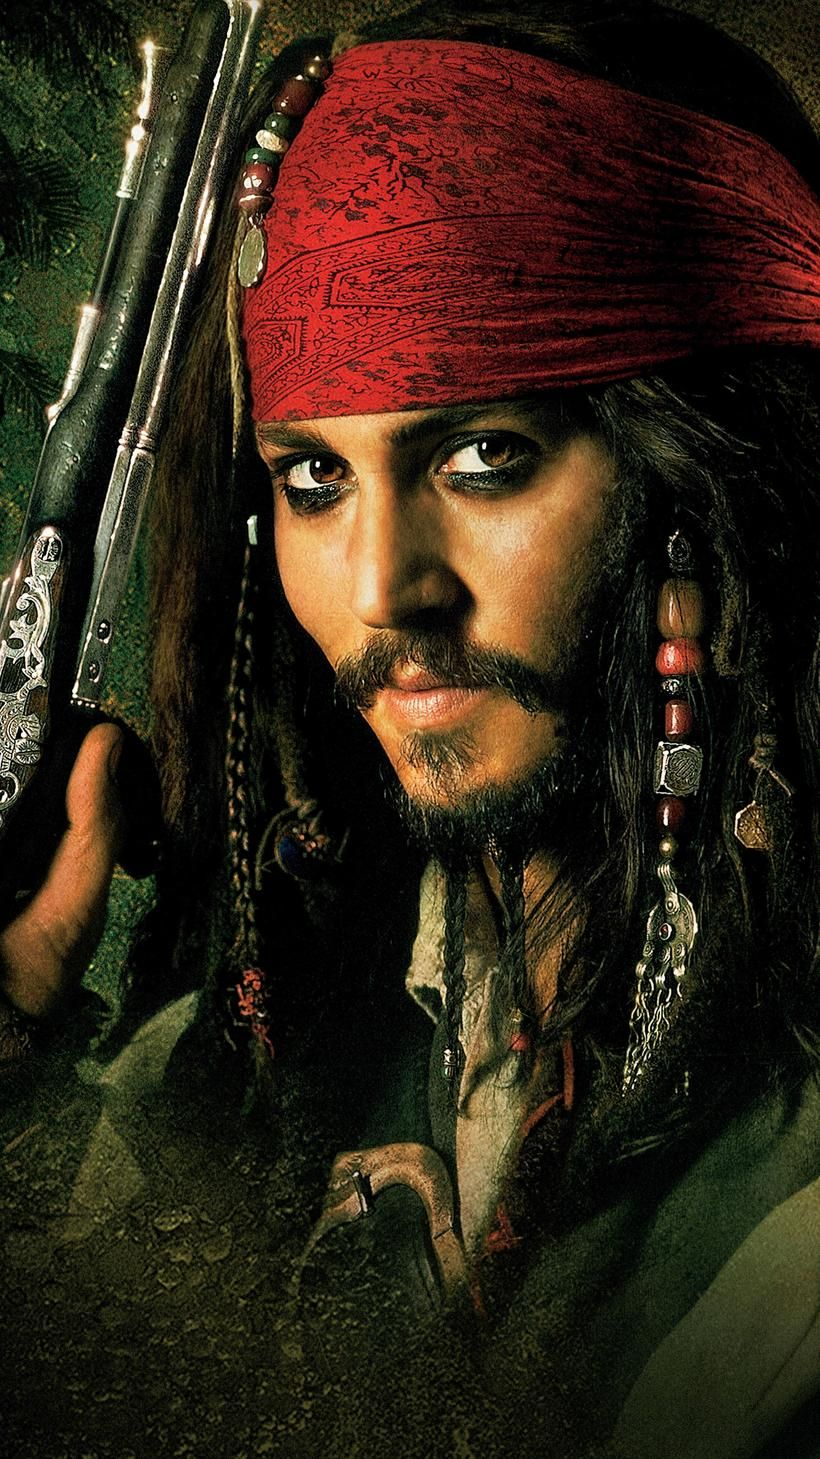 Riverdale Phone Wallpapers Moviemania Pirates Of The Caribbean Jack Sparrow Wallpaper Jack Sparrow